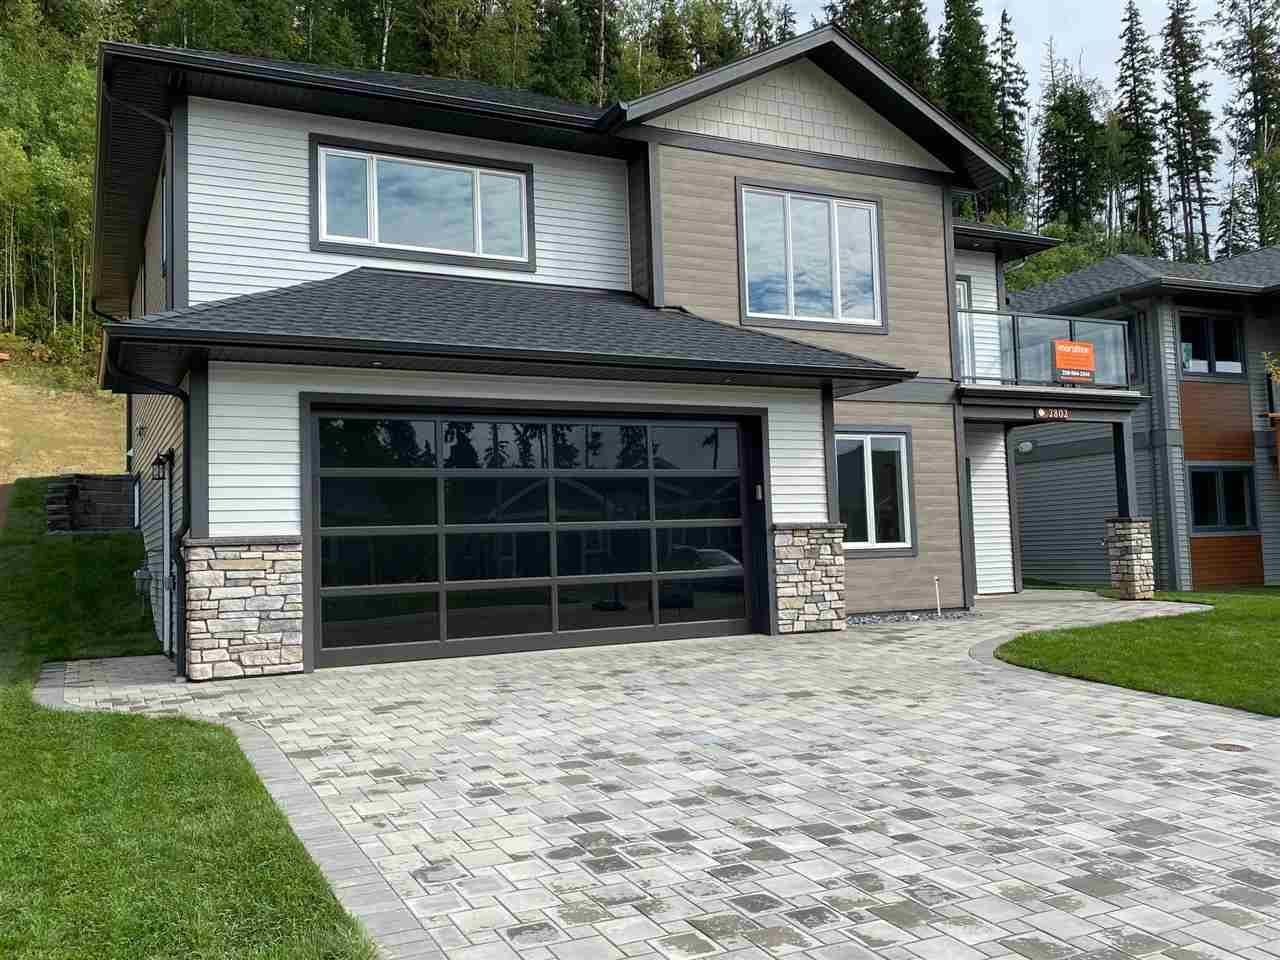 Main Photo: 2802 LINKS Drive in Prince George: Aberdeen PG House for sale (PG City North (Zone 73))  : MLS®# R2426849